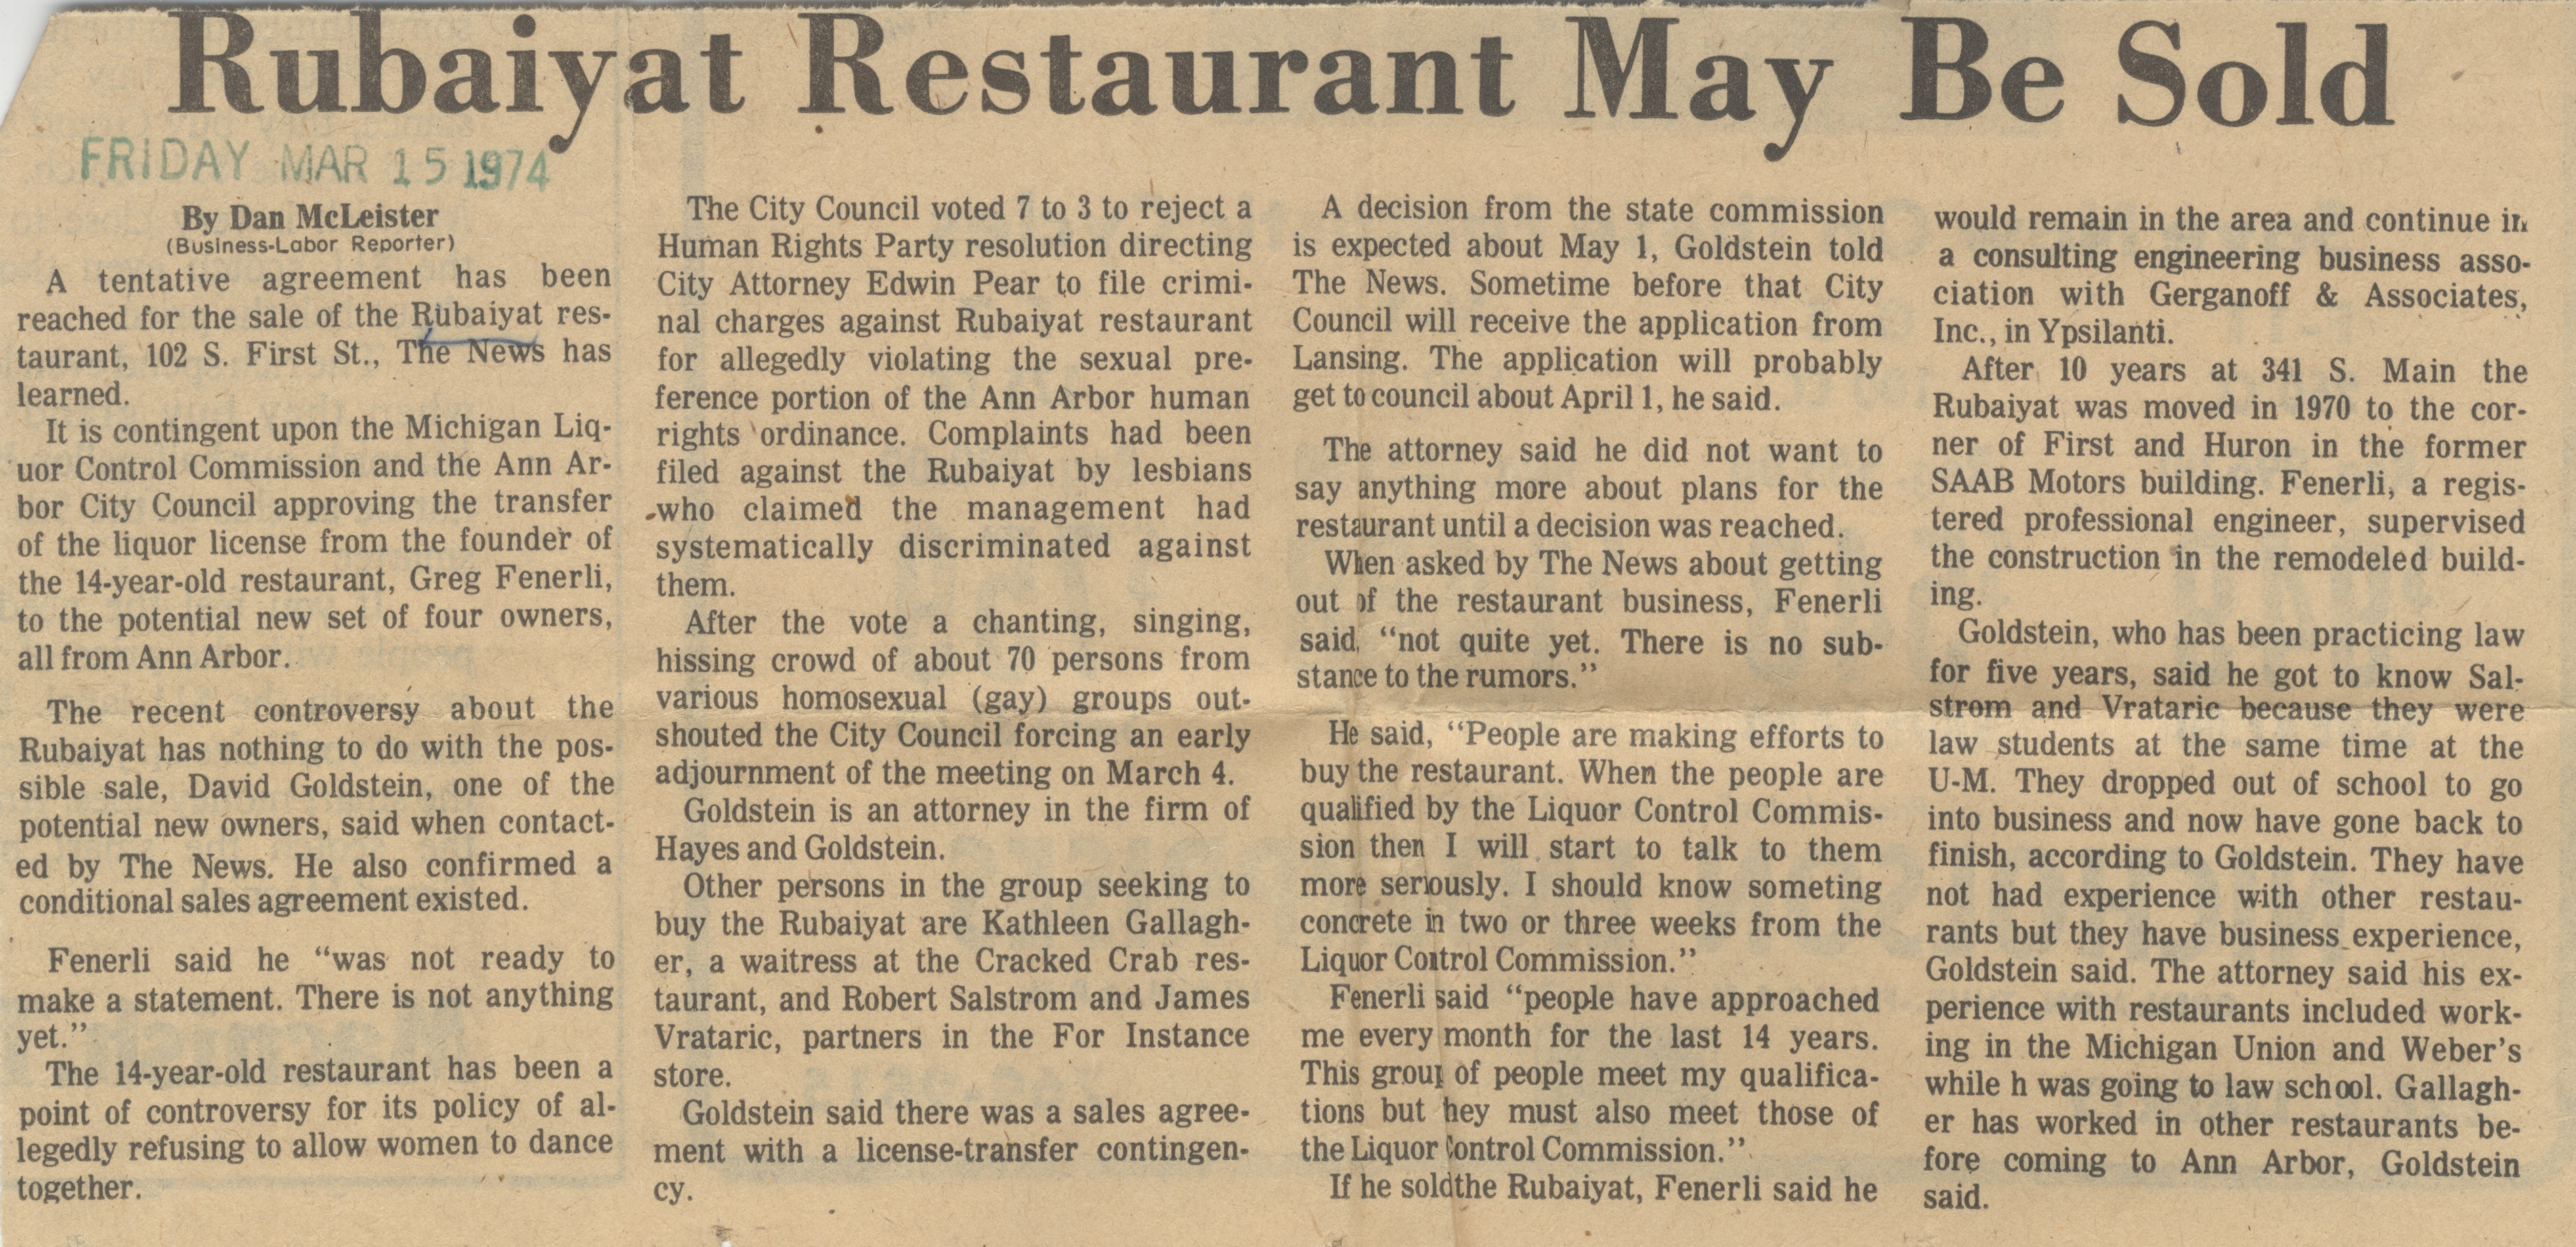 Rubaiyat Restaurant May Be Sold image